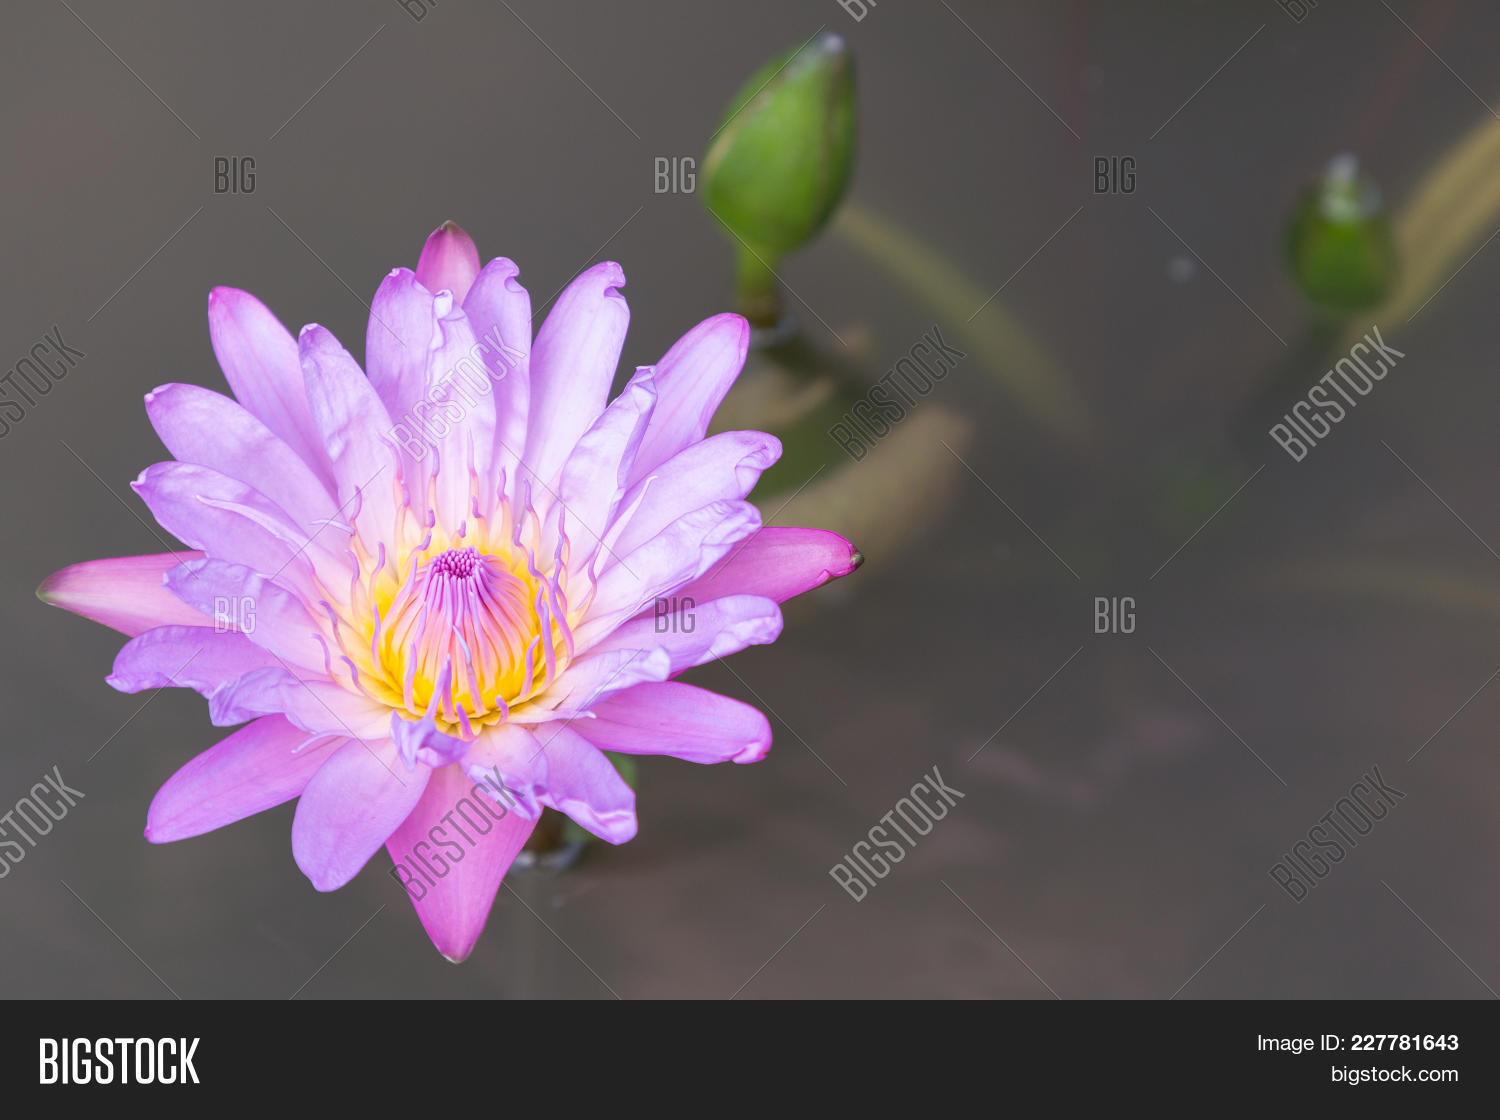 Lotus Flower Water Image Photo Free Trial Bigstock